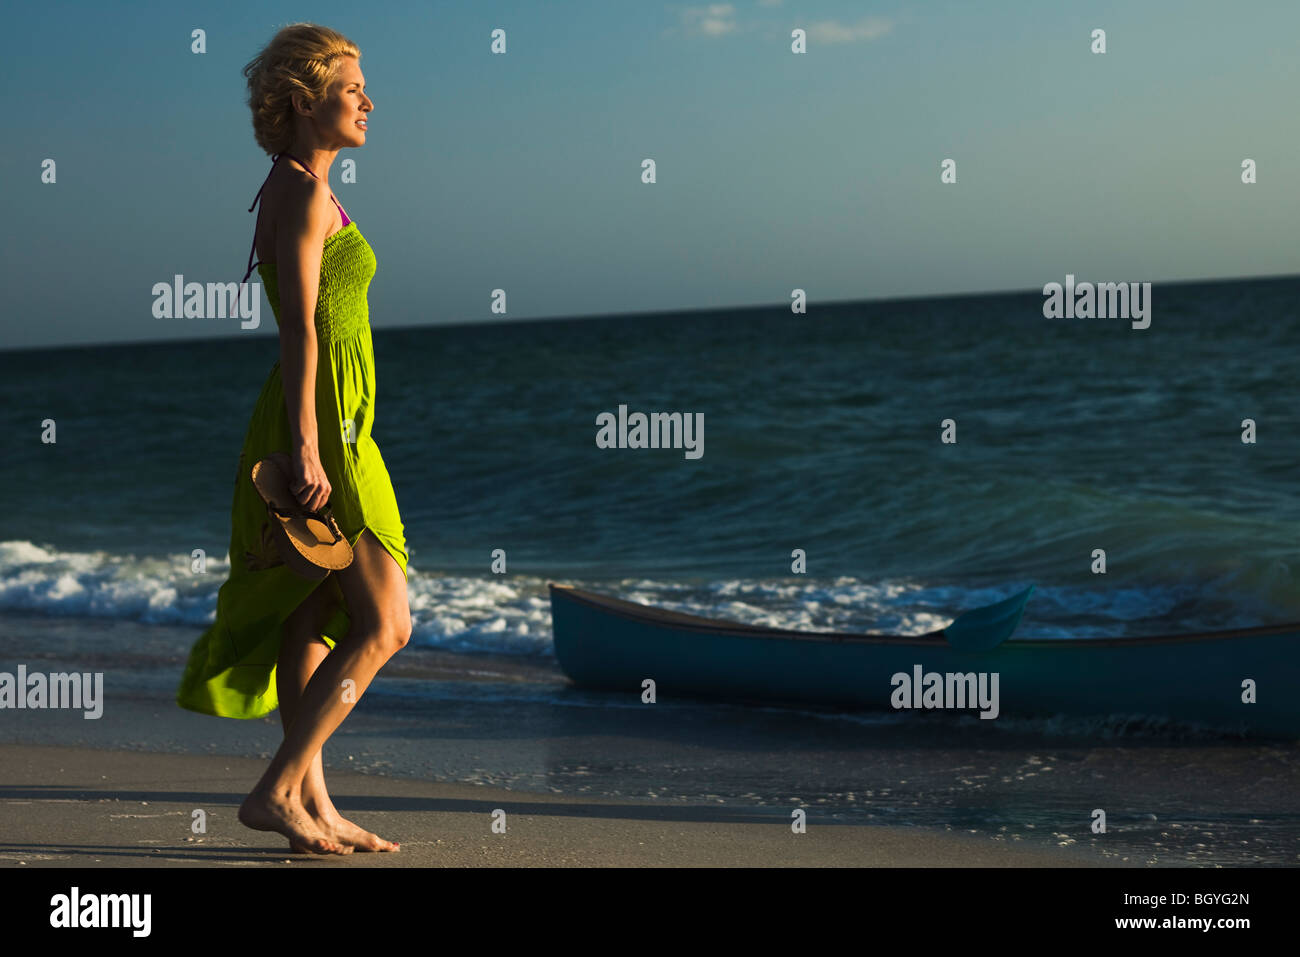 Woman in sundress walking on beach, looking at sea - Stock Image